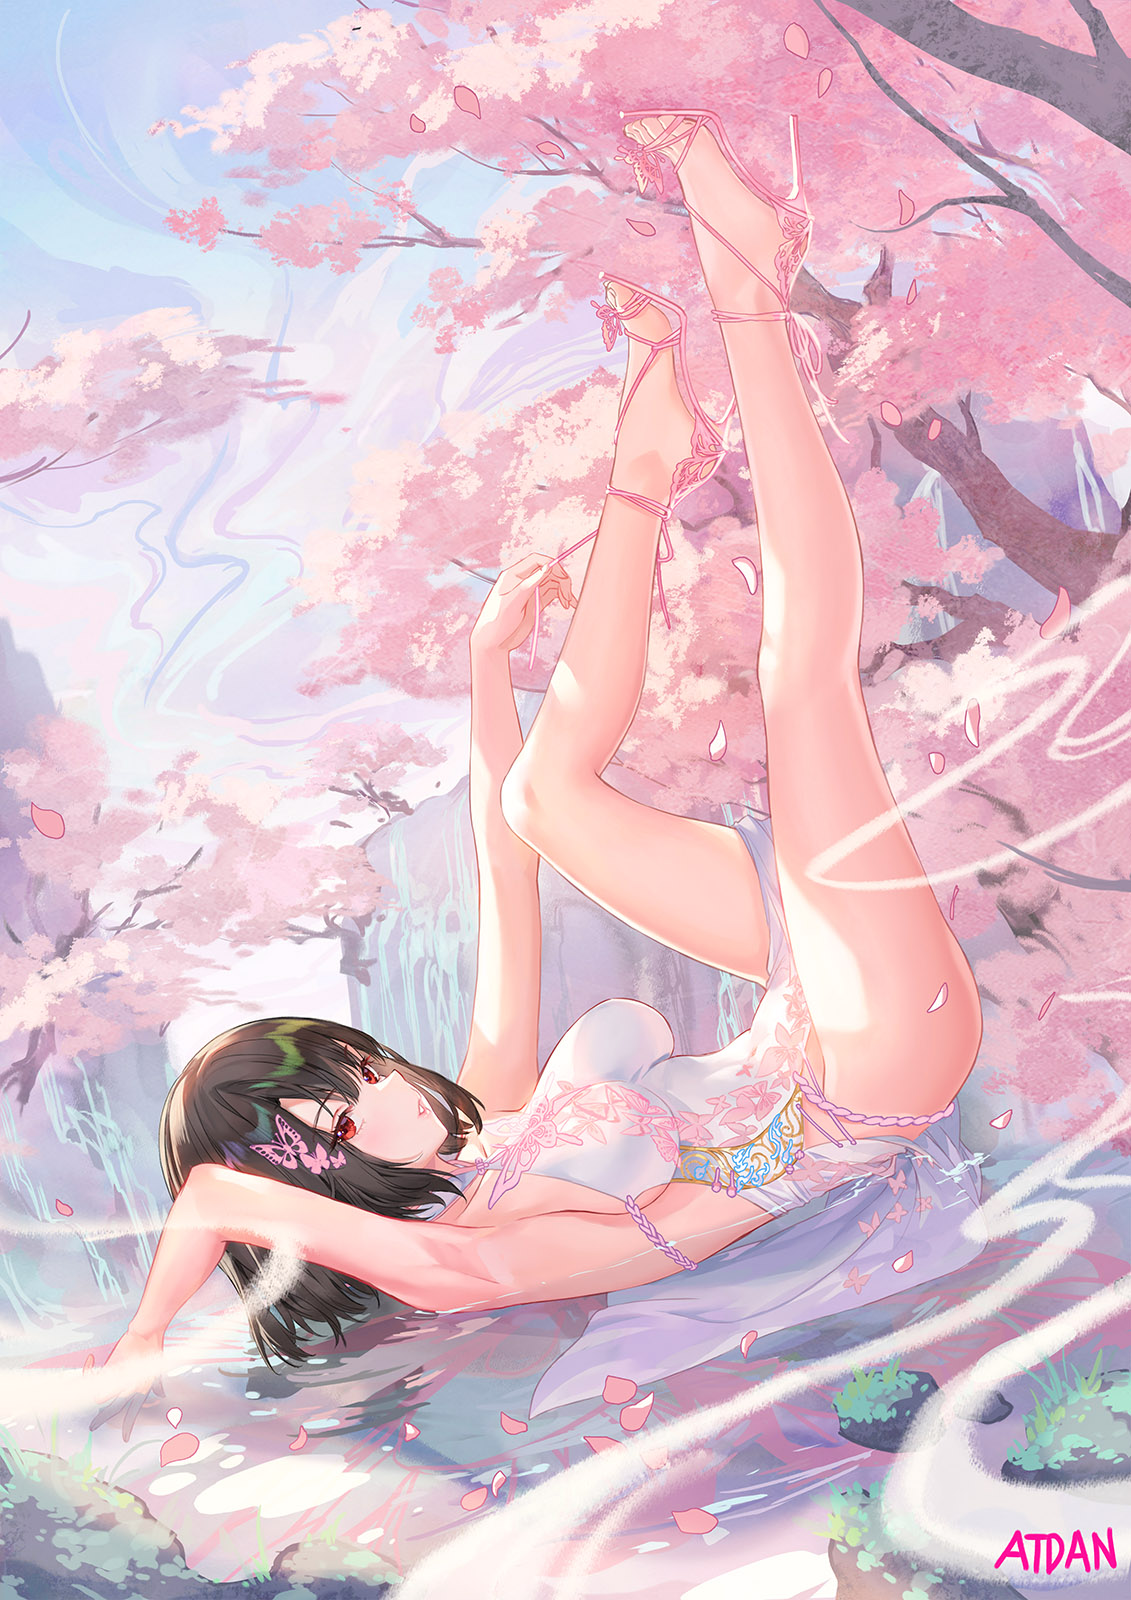 1girl arm_up armpits atdan bare_arms bare_legs bare_shoulders barefoot black_hair breasts cherry_blossoms dress feet hair_ornament highres large_breasts legs_up looking_at_viewer lying no_panties on_back original outdoors parted_lips pelvic_curtain petals pink_theme red_eyes short_hair sleeveless sleeveless_dress solo thighs tree water white_dress